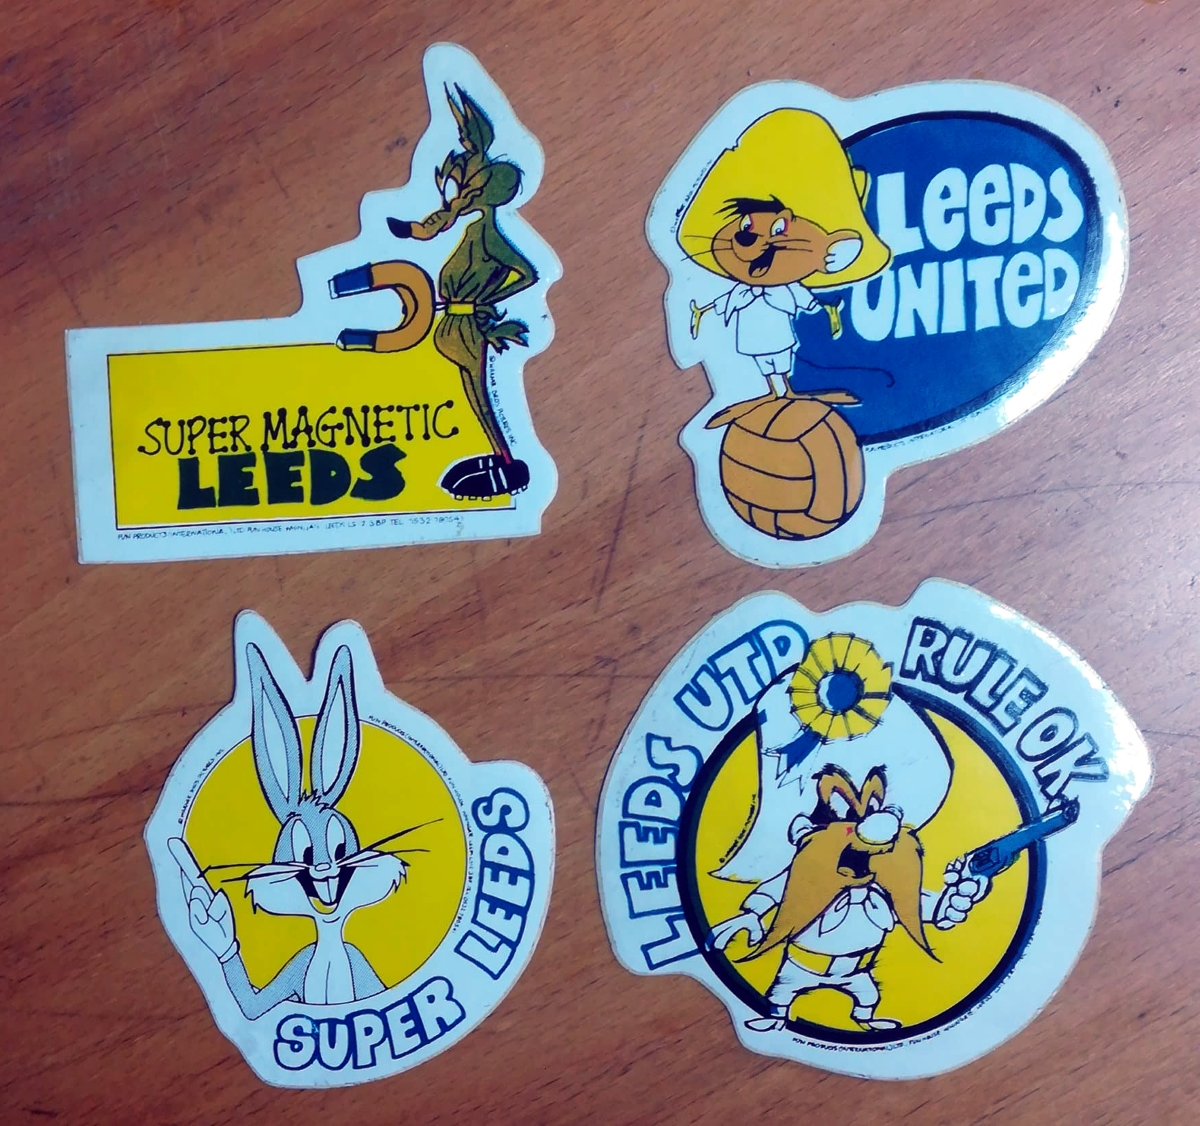 Leeds United memorabilia collector